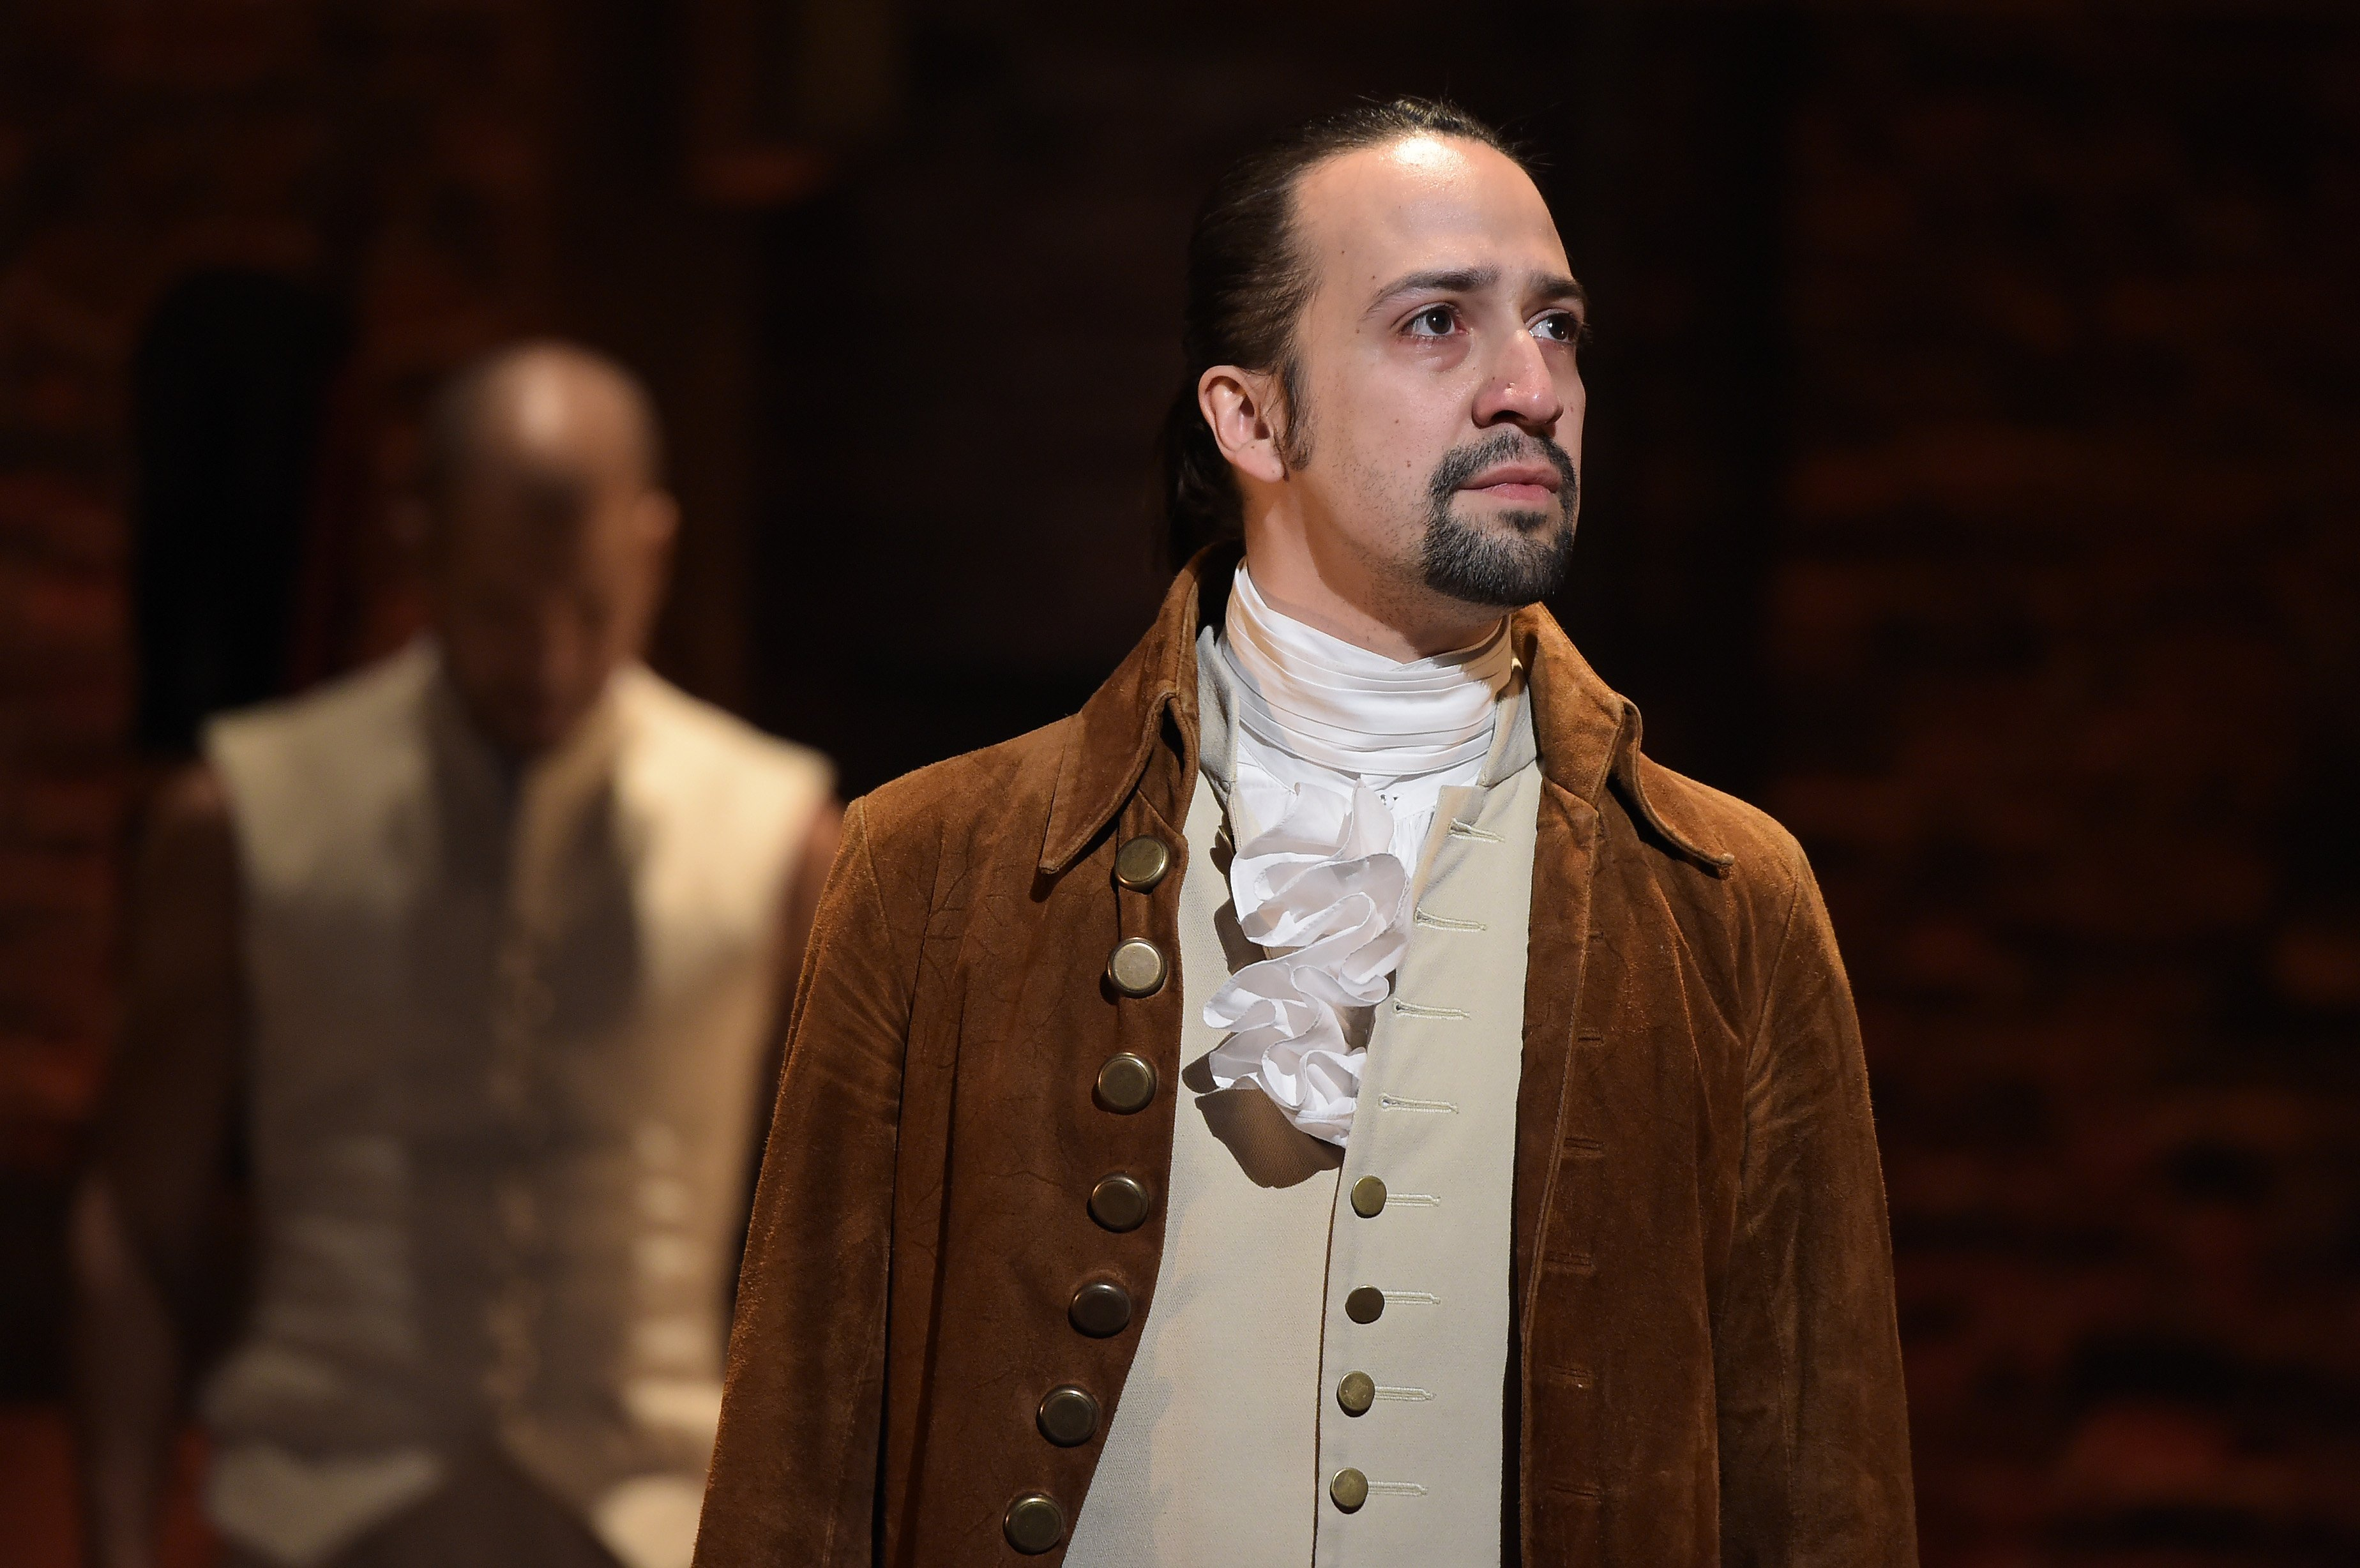 """Broadway actor Lin-Manuel Miranda during his Grammy performance for """"Hamilton"""" in 2016.   Photo: Getty Images"""